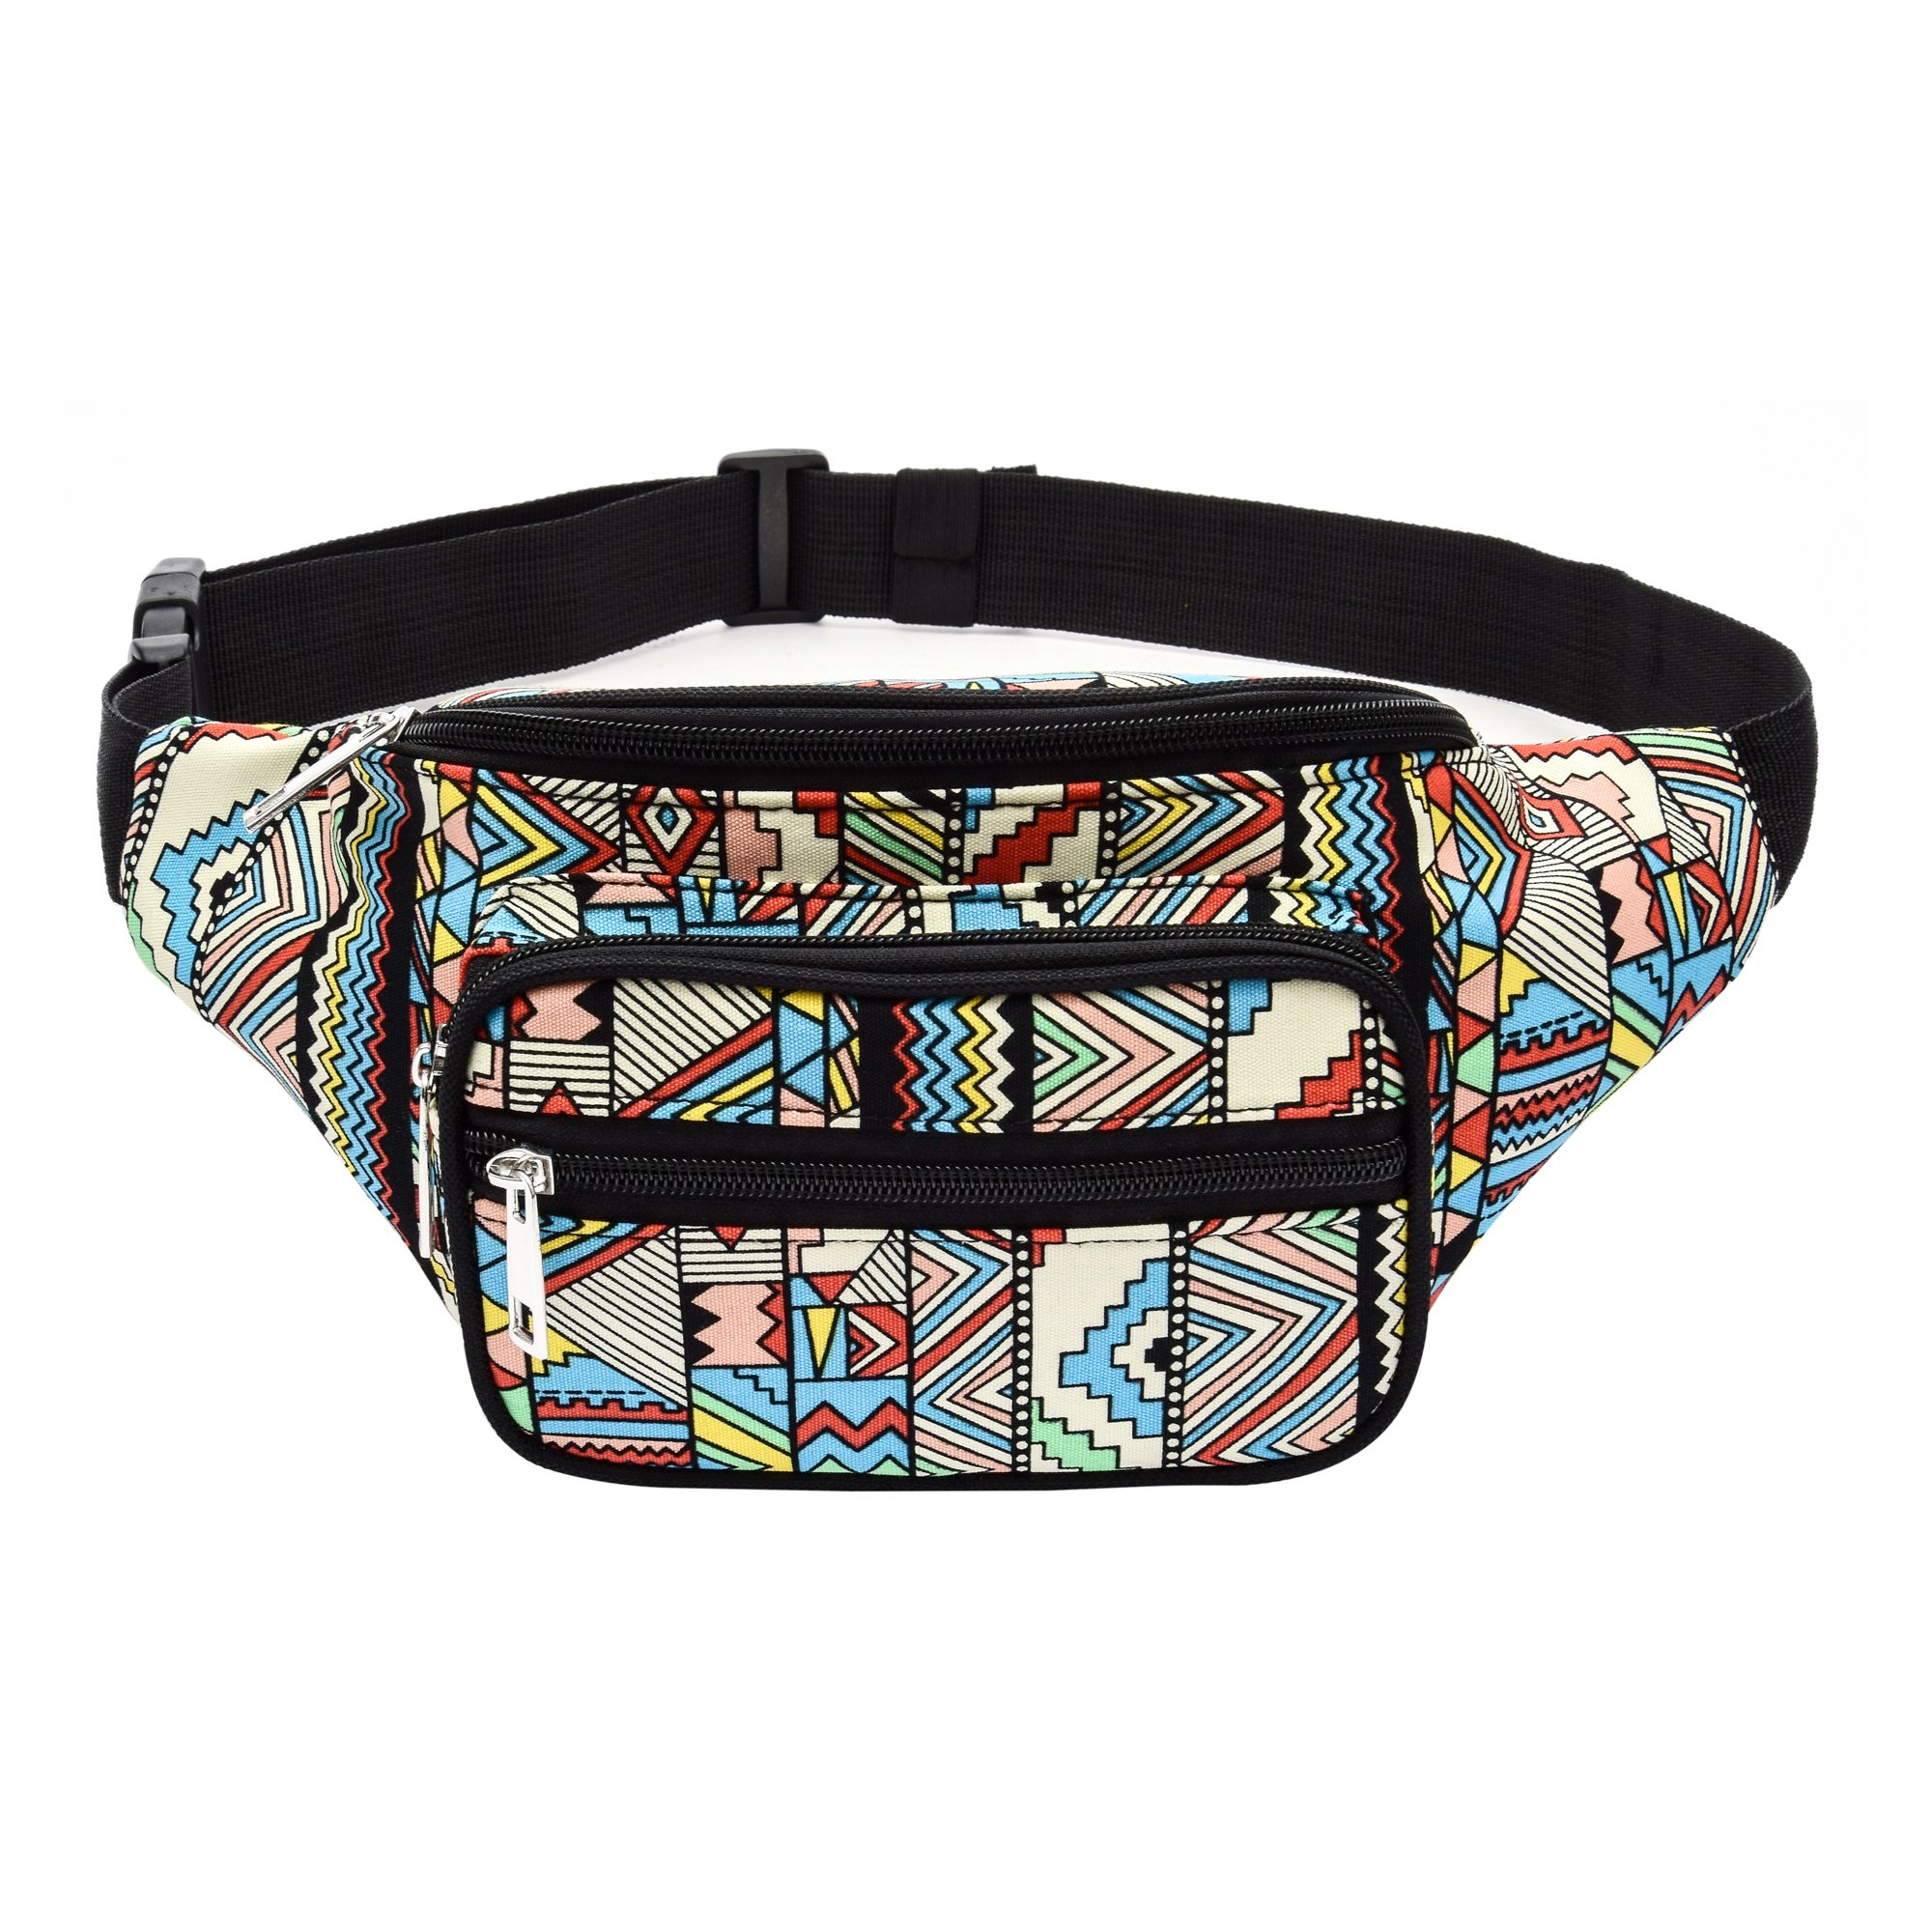 Kayhoma Boho Fanny Pack Geometric Shape Festival Bum Bags Travel Hiking Belt Purse